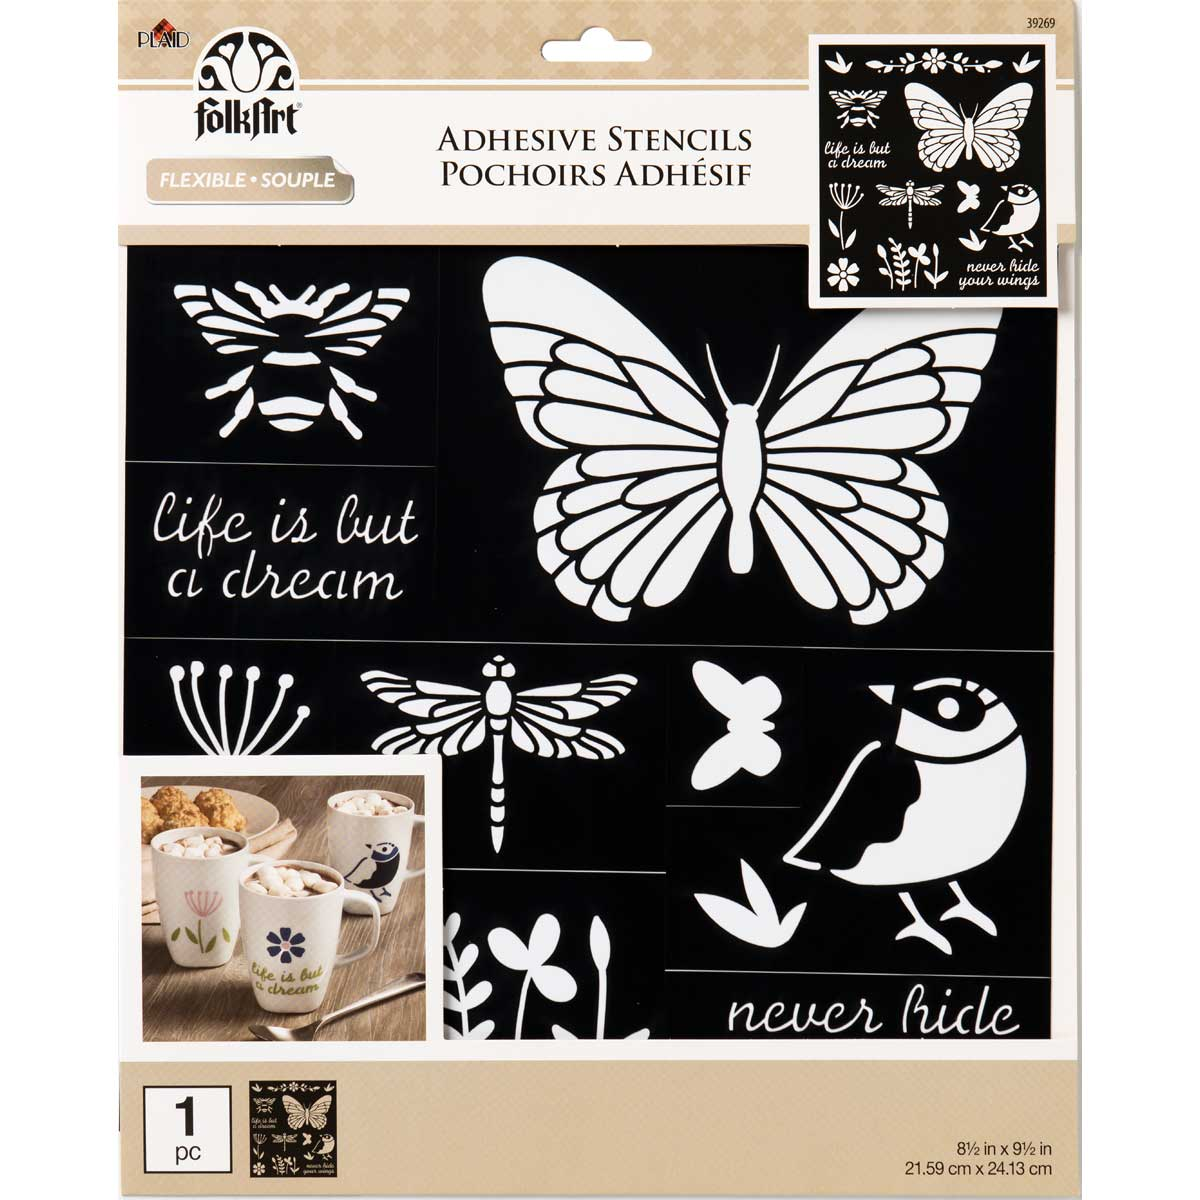 FolkArt ® Laser Cut Adhesive Stencils - Birds, Bees & More